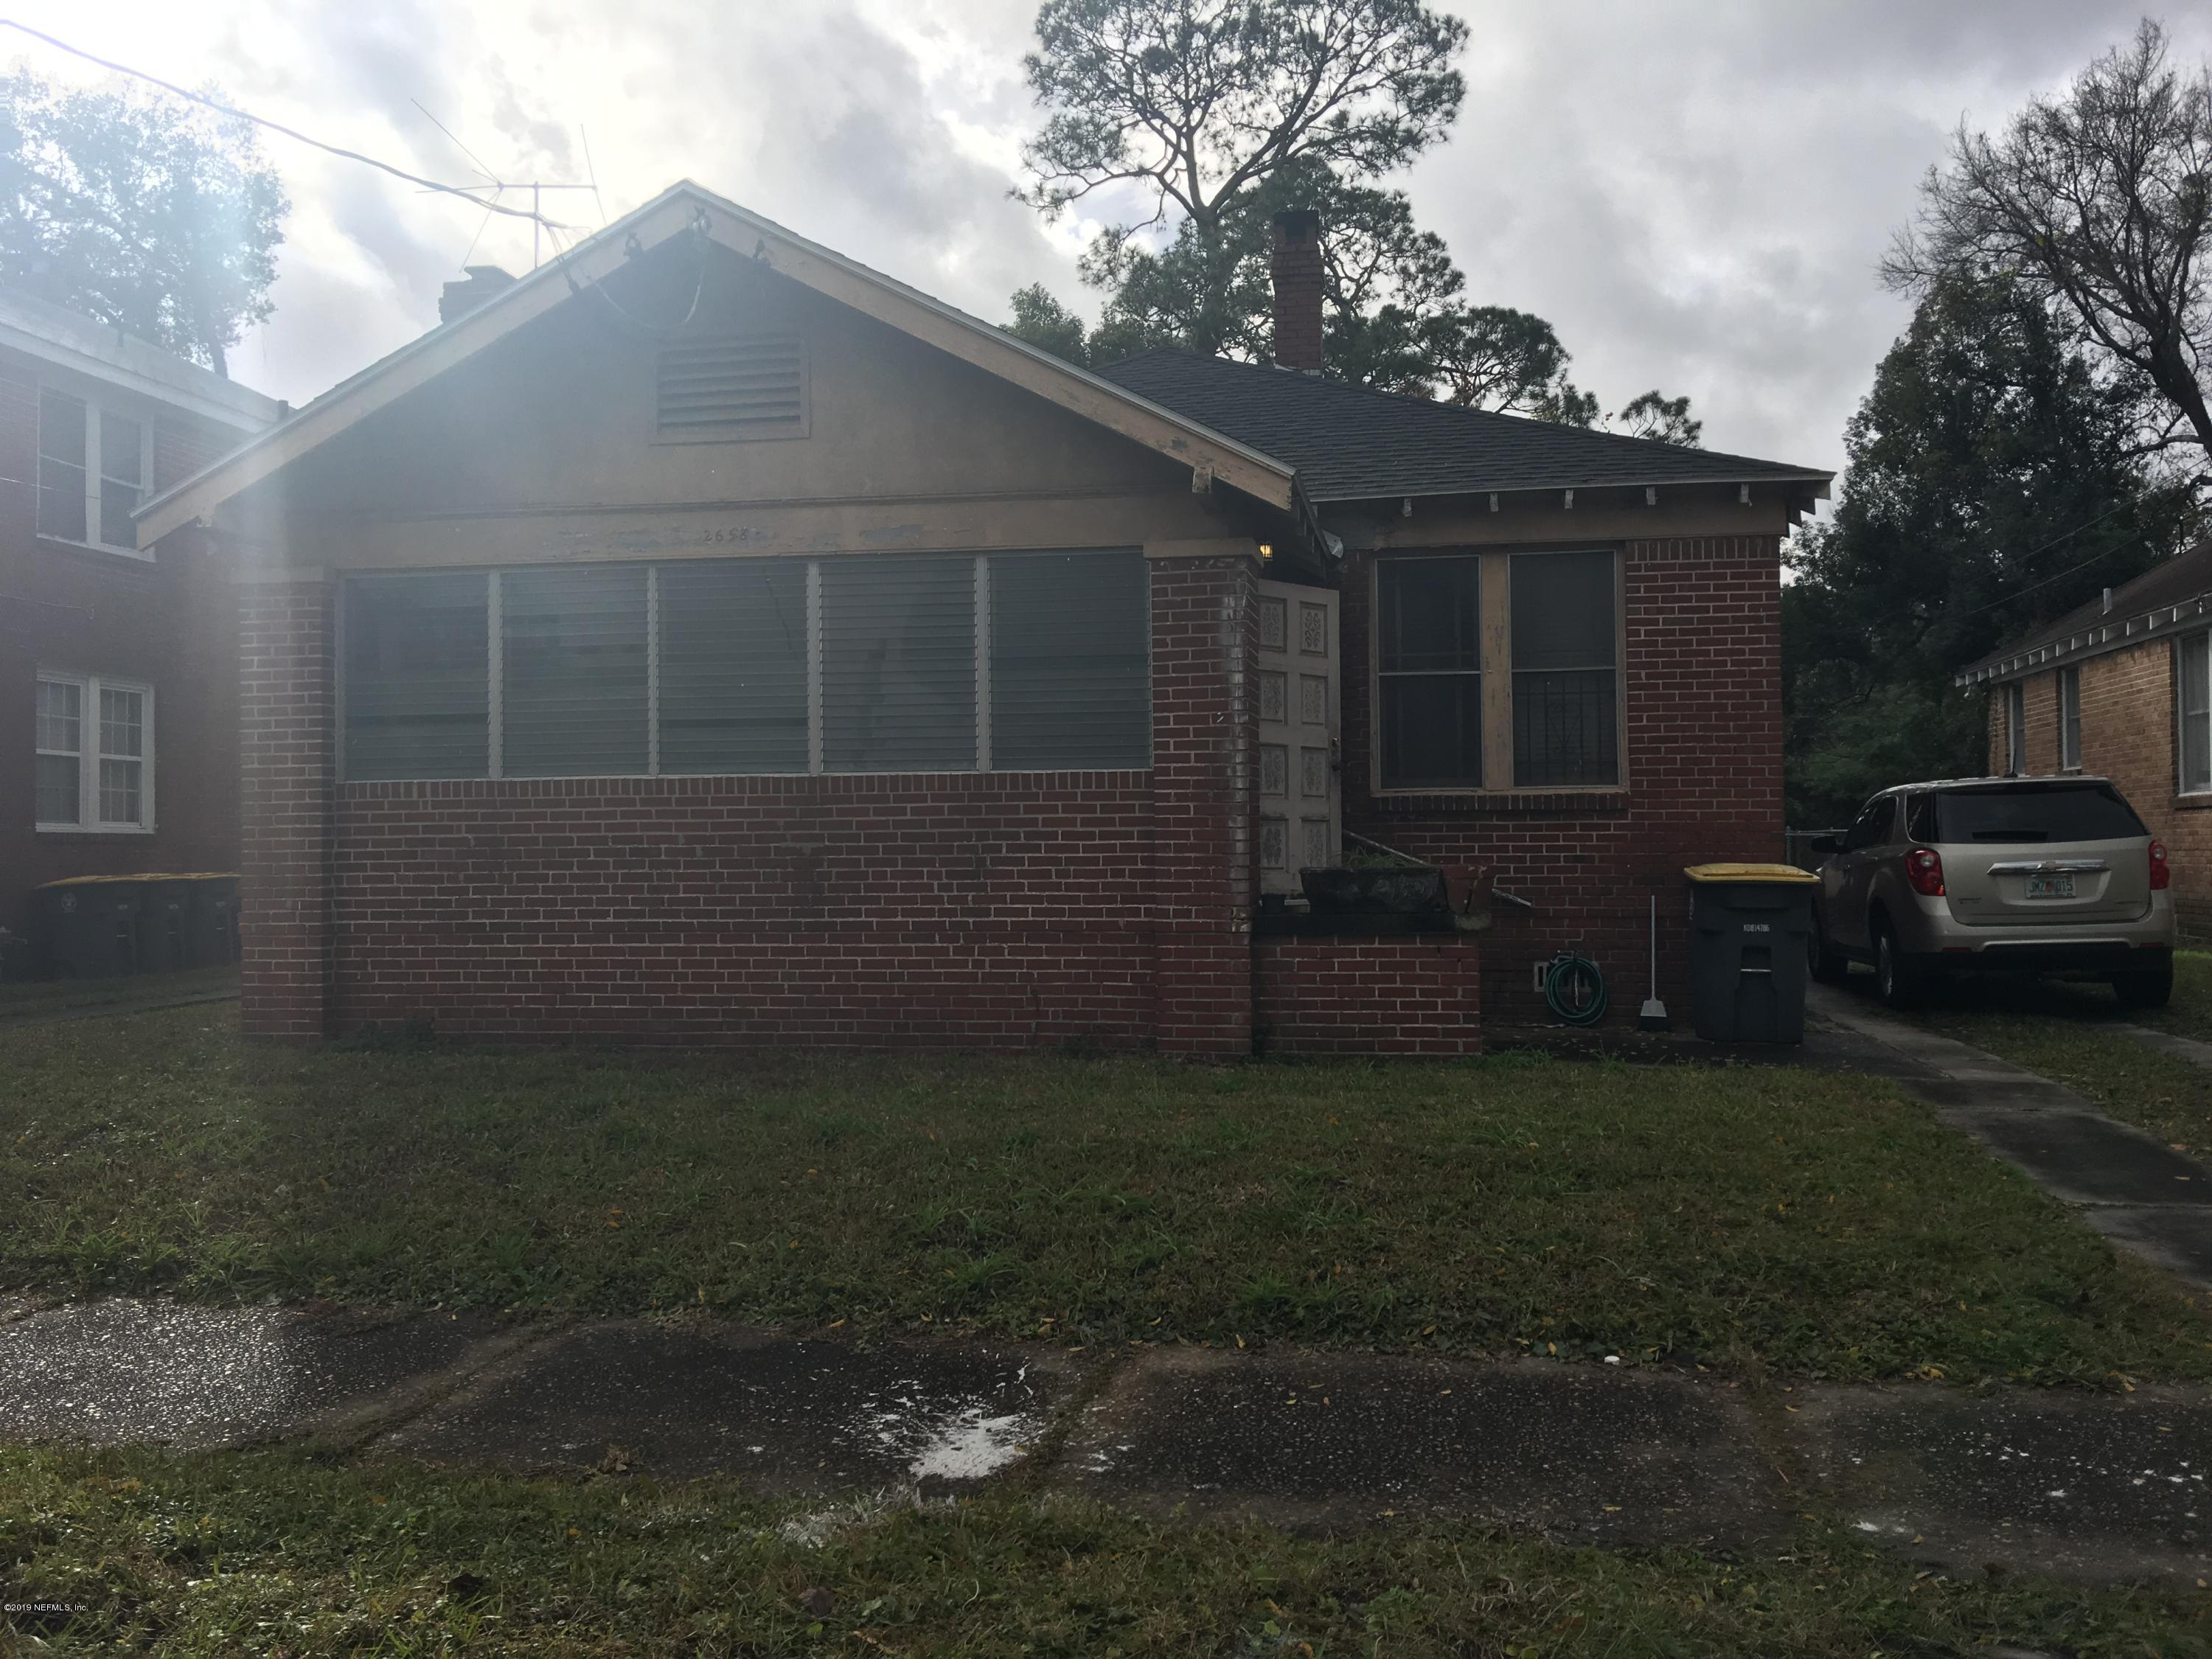 2658 DELLWOOD, JACKSONVILLE, FLORIDA 32204, 3 Bedrooms Bedrooms, ,2 BathroomsBathrooms,Residential - single family,For sale,DELLWOOD,972546